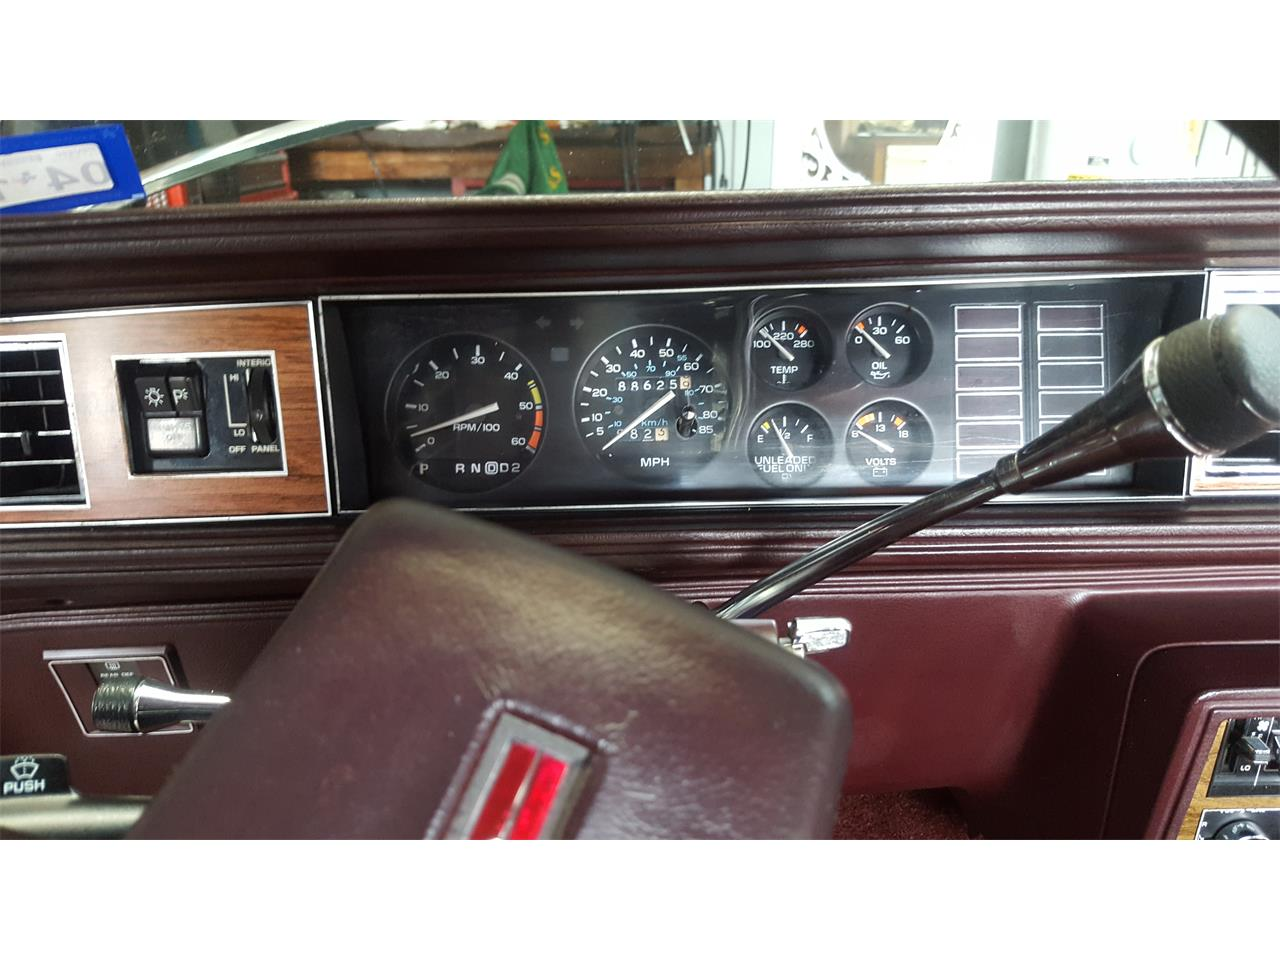 Large Picture of '88 Oldsmobile Cutlass Supreme Brougham located in Dickinson Texas - $19,000.00 Offered by a Private Seller - MN5B